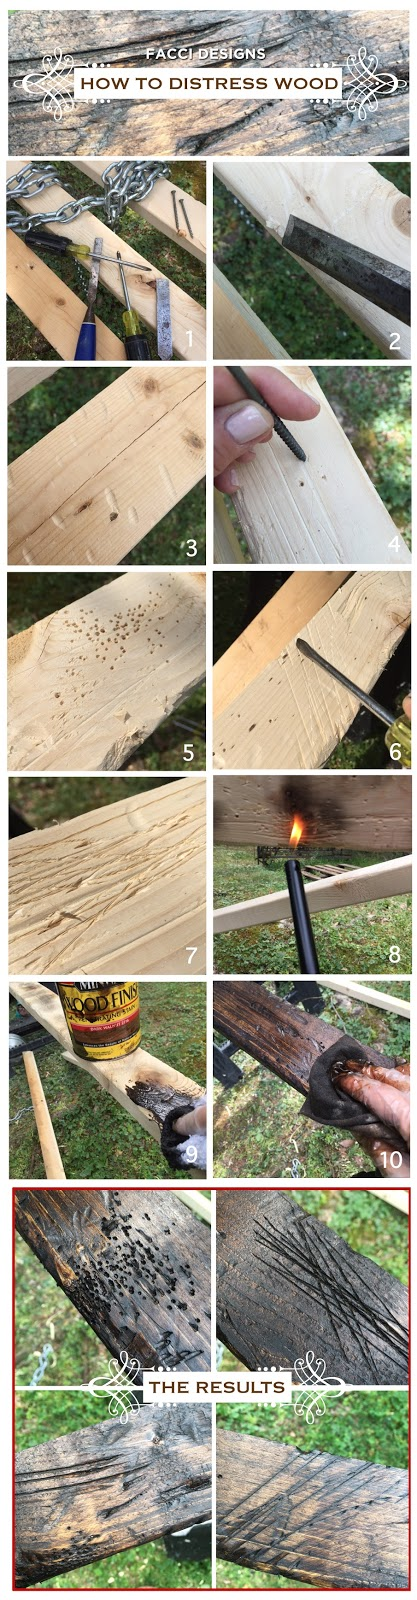 Chisel, screwdrivers, hammer, chain, screw, nail, BBQ lighter or blow torch, wood stain and rag are things you need to make a faux old wood beam. (via https:)